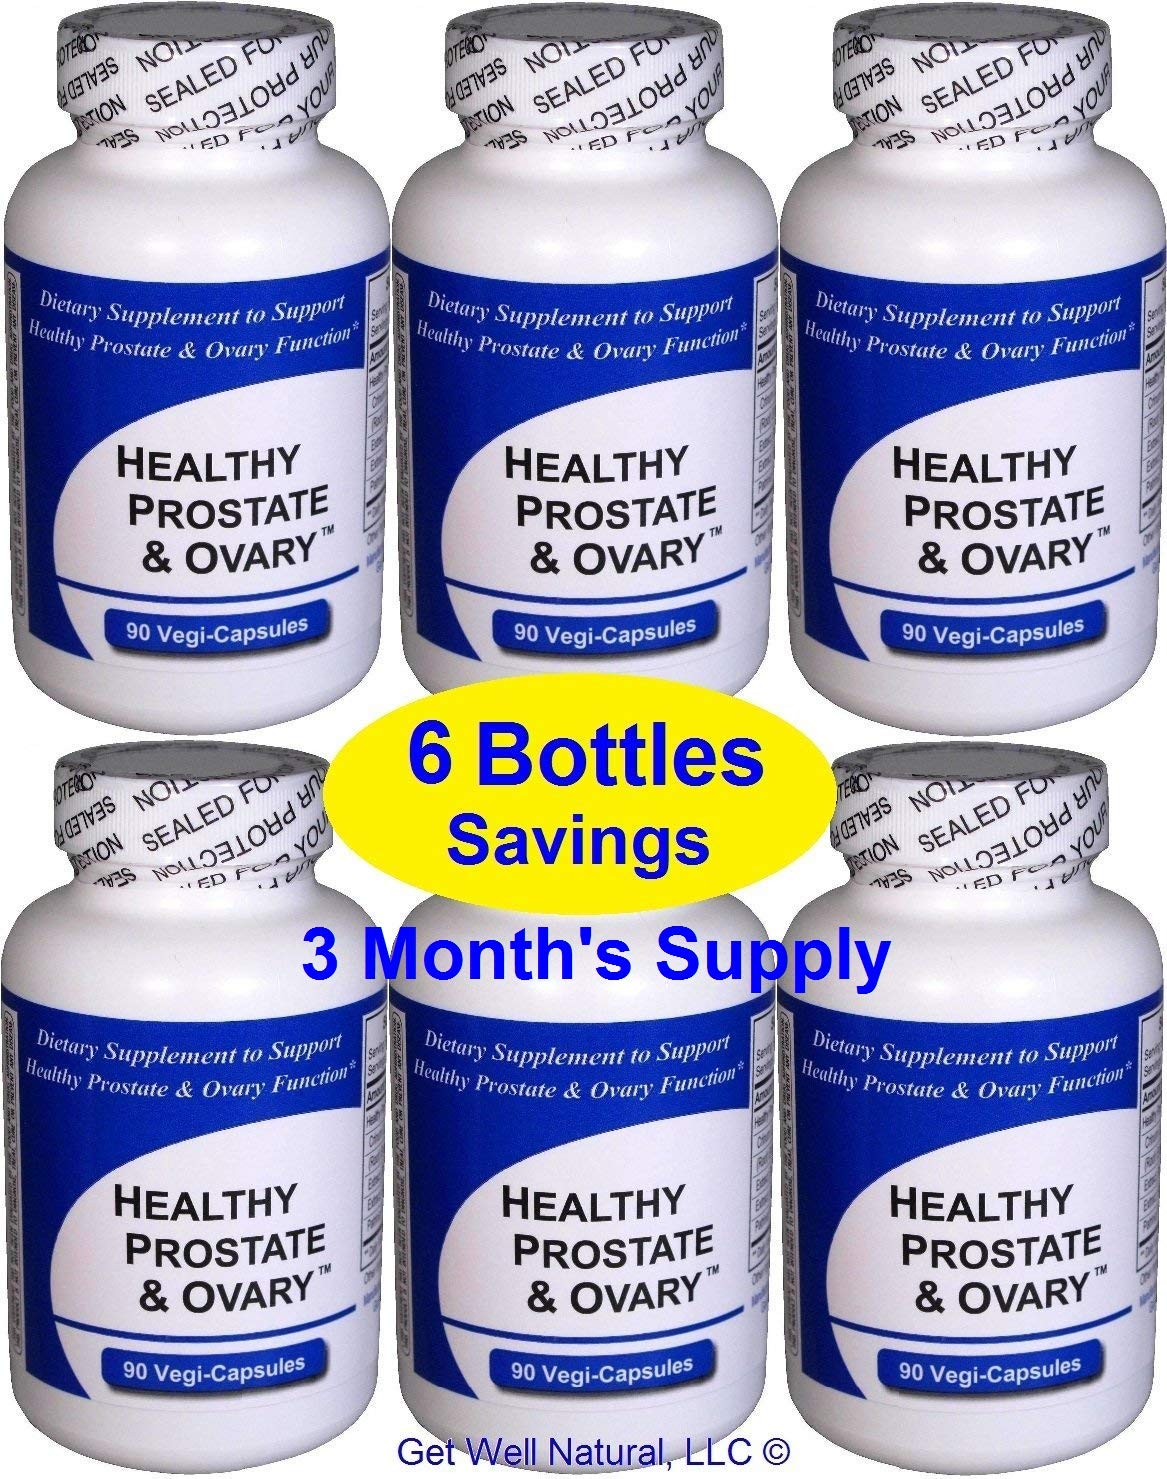 Healthy Prostate and Ovary (6 Bottles Contain a Total of 540 Capsules) - Concentrated Herbal Blend - with Crinum Latifolium, Vegan Kosher Caps. Prostate Herbs for Optimal Support*